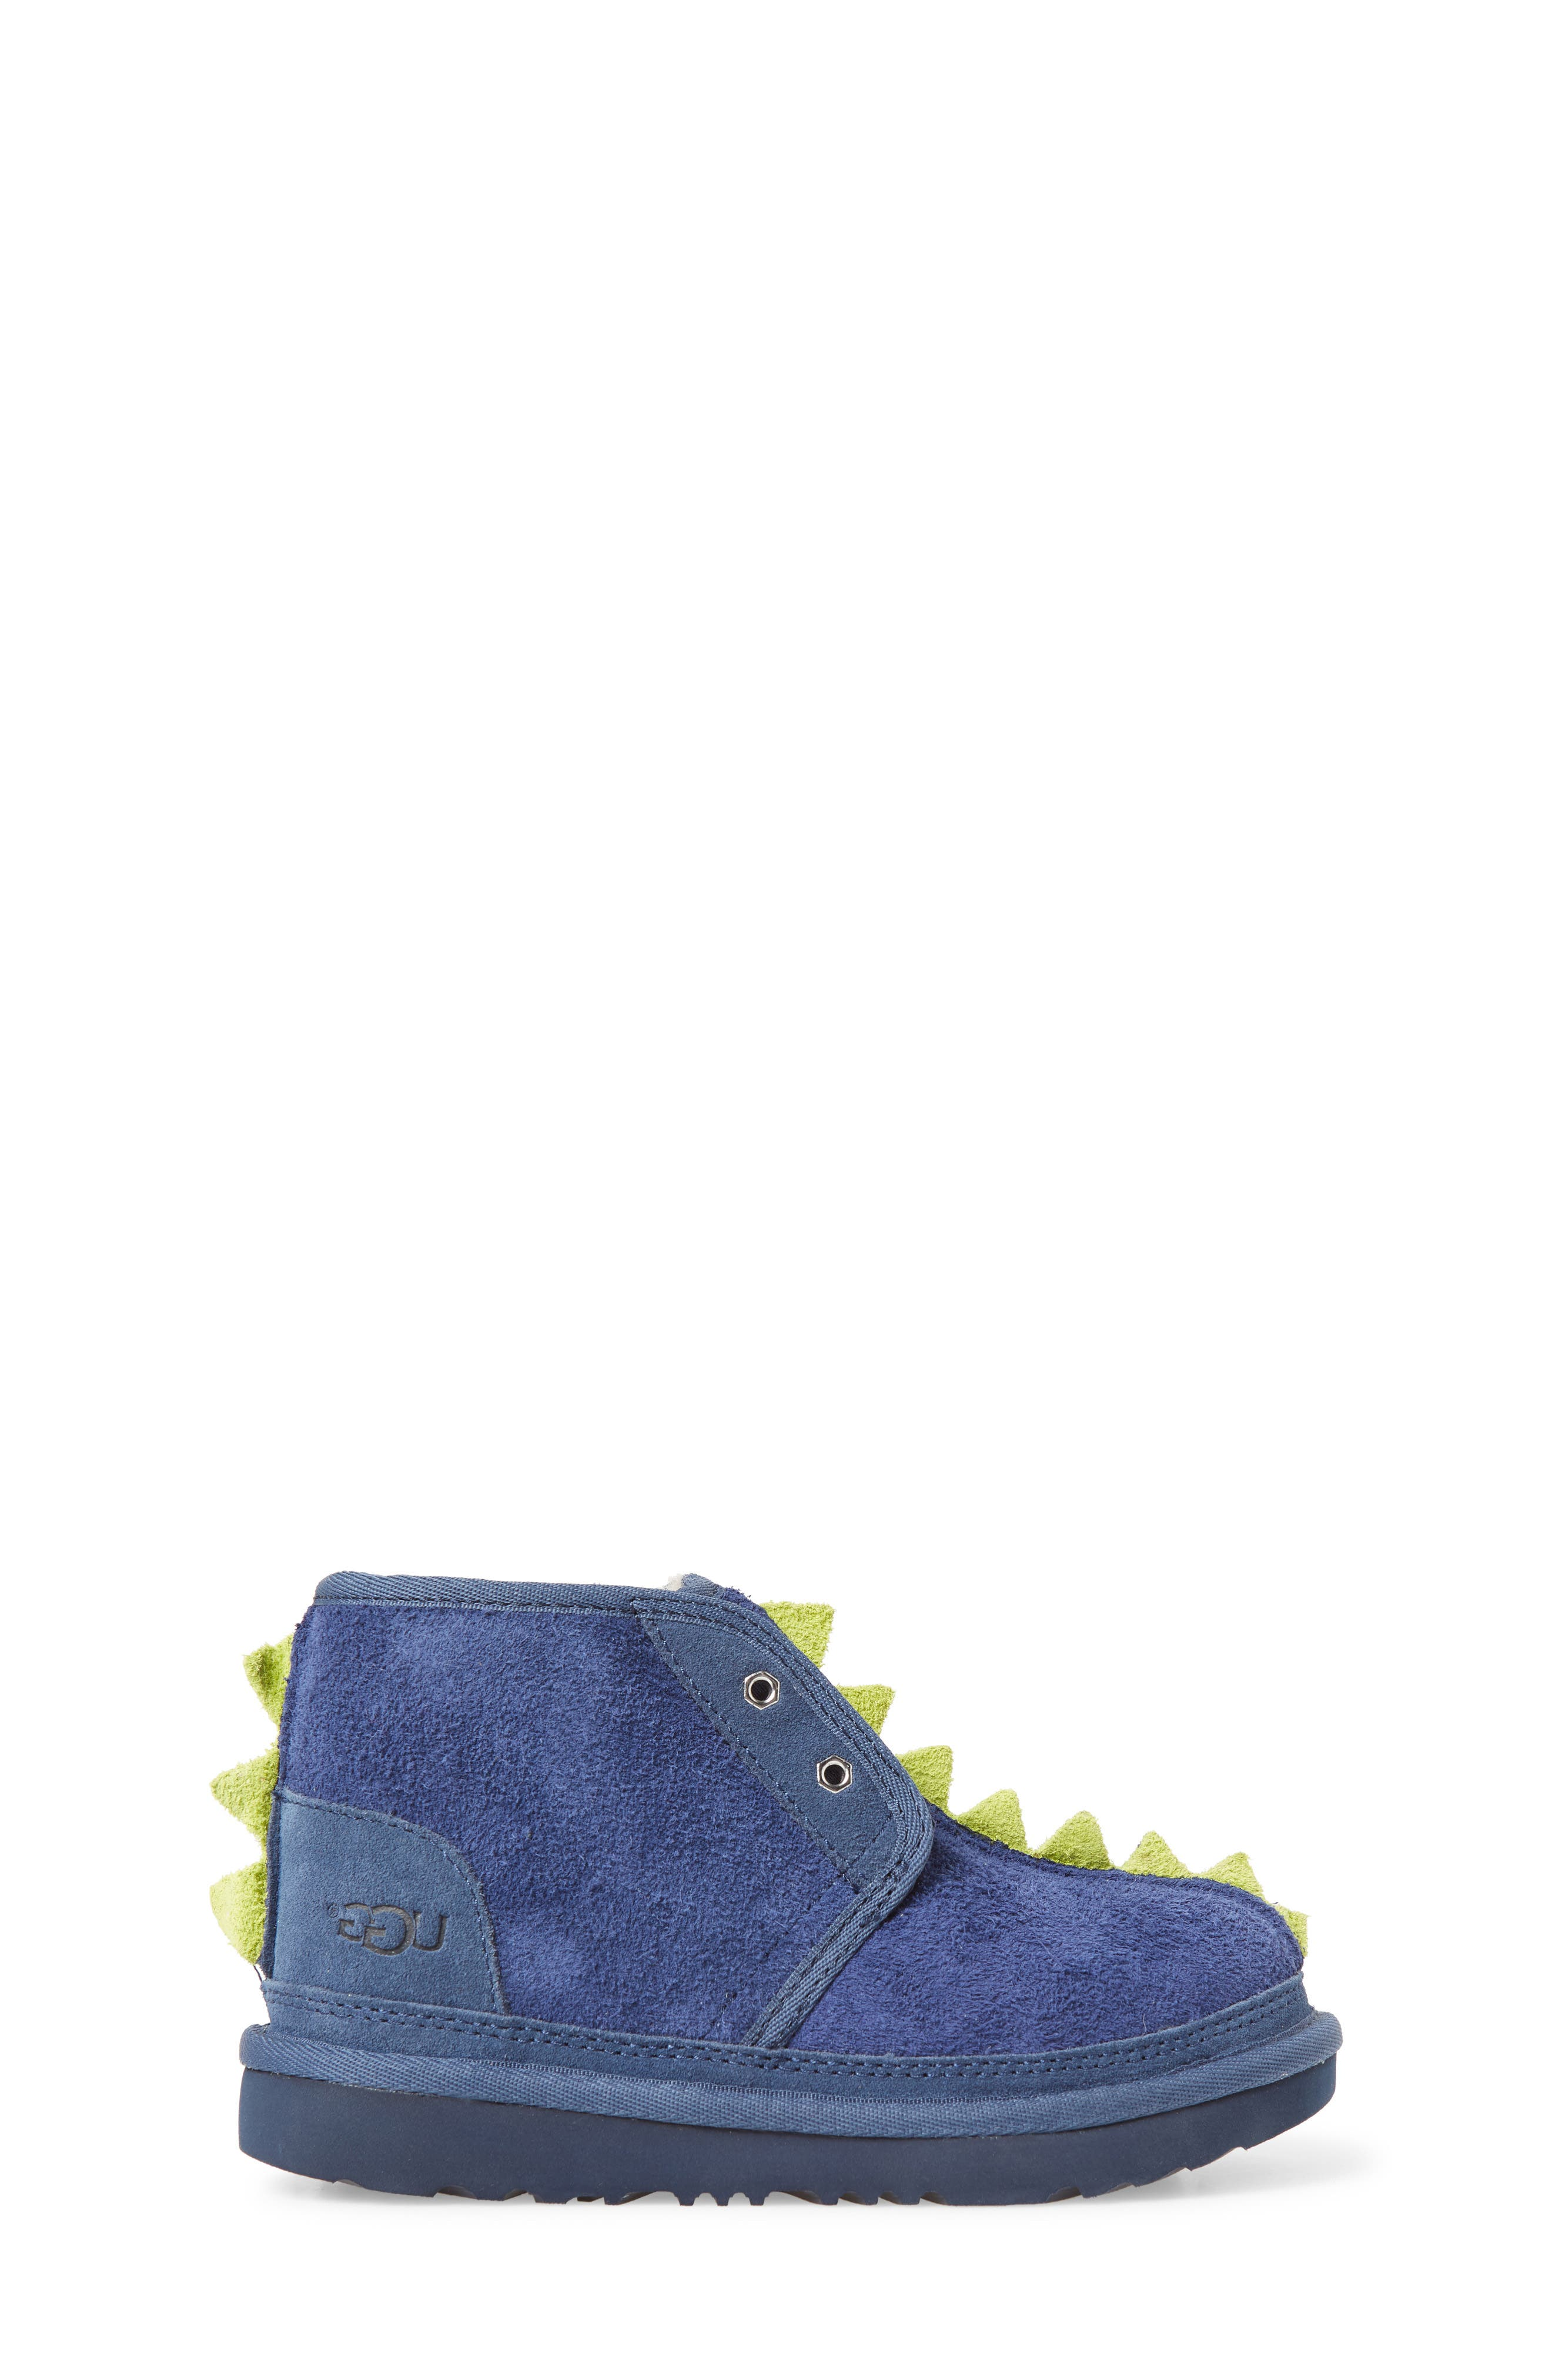 Dydo Neumel Genuine Shearling Lined Boot,                             Alternate thumbnail 3, color,                             NAVY / BRIGHT CHARTREUSE